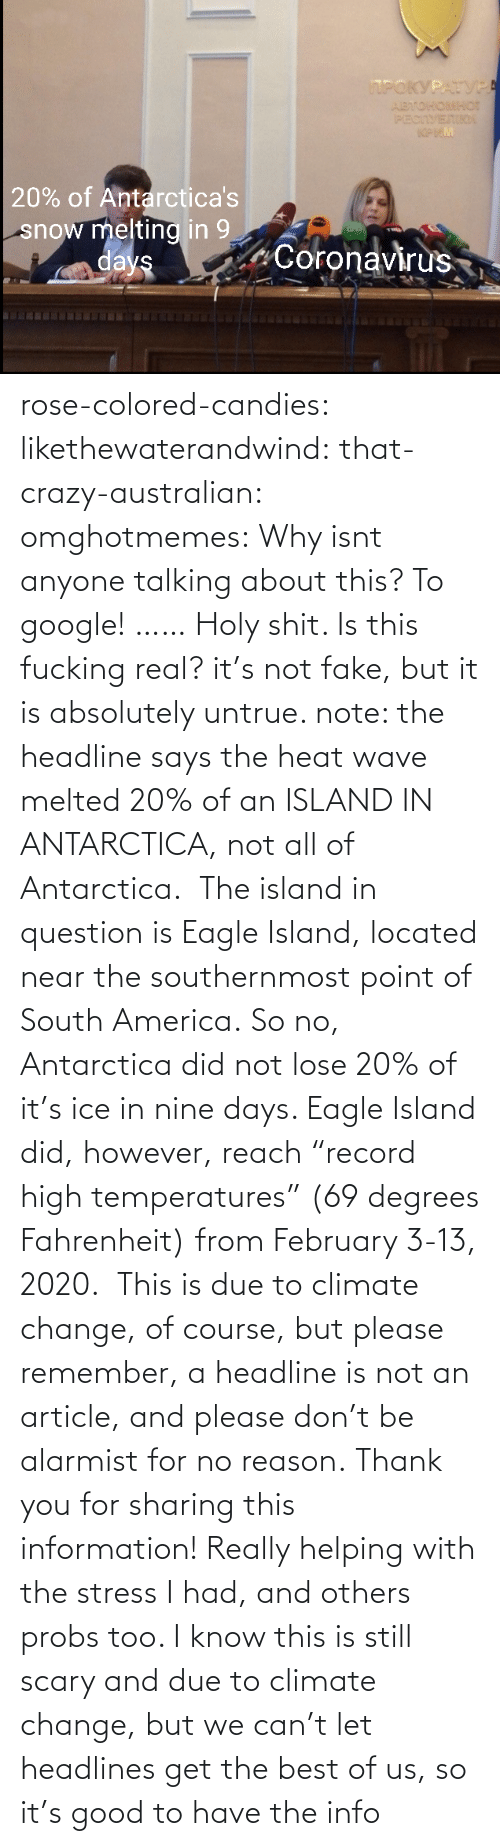 "question: rose-colored-candies: likethewaterandwind:   that-crazy-australian:  omghotmemes:  Why isnt anyone talking about this?   To google!  ……   Holy shit. Is this fucking real?   it's not fake, but it is absolutely untrue. note: the headline says the heat wave melted 20% of an ISLAND IN ANTARCTICA, not all of Antarctica.  The island in question is Eagle Island, located near the southernmost point of South America. So no, Antarctica did not lose 20% of it's ice in nine days. Eagle Island did, however, reach ""record high temperatures"" (69 degrees Fahrenheit) from February 3-13, 2020.  This is due to climate change, of course, but please remember, a headline is not an article, and please don't be alarmist for no reason.    Thank you for sharing this information! Really helping with the stress I had, and others probs too. I know this is still scary and due to climate change, but we can't let headlines get the best of us, so it's good to have the info"